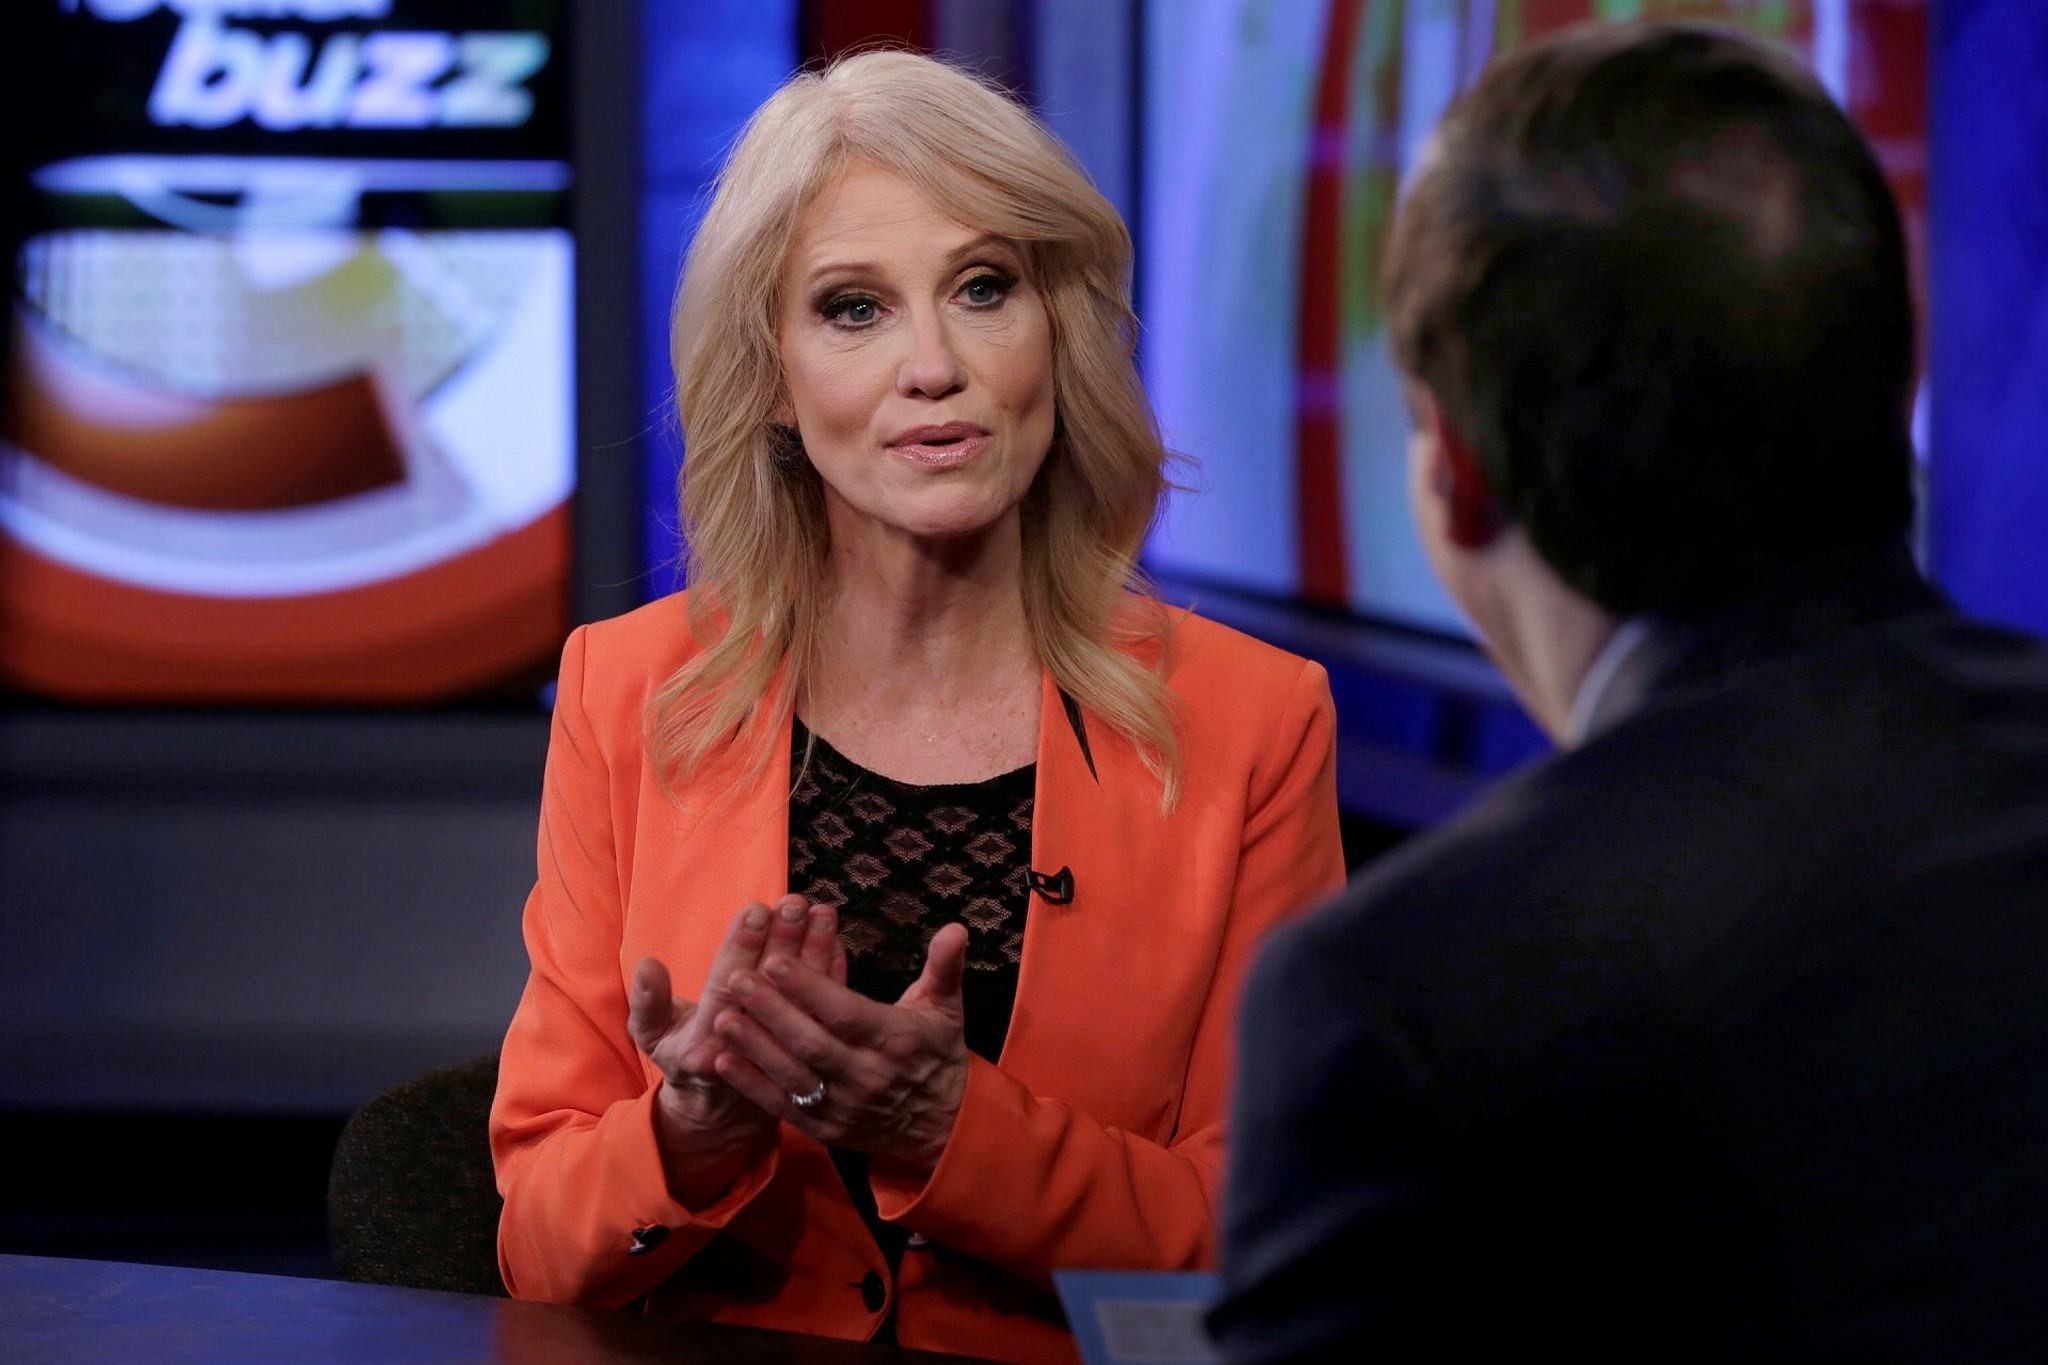 Counselor to the President Kellyanne Conway is interviewed by Howard Kurtz. (AP Photo)